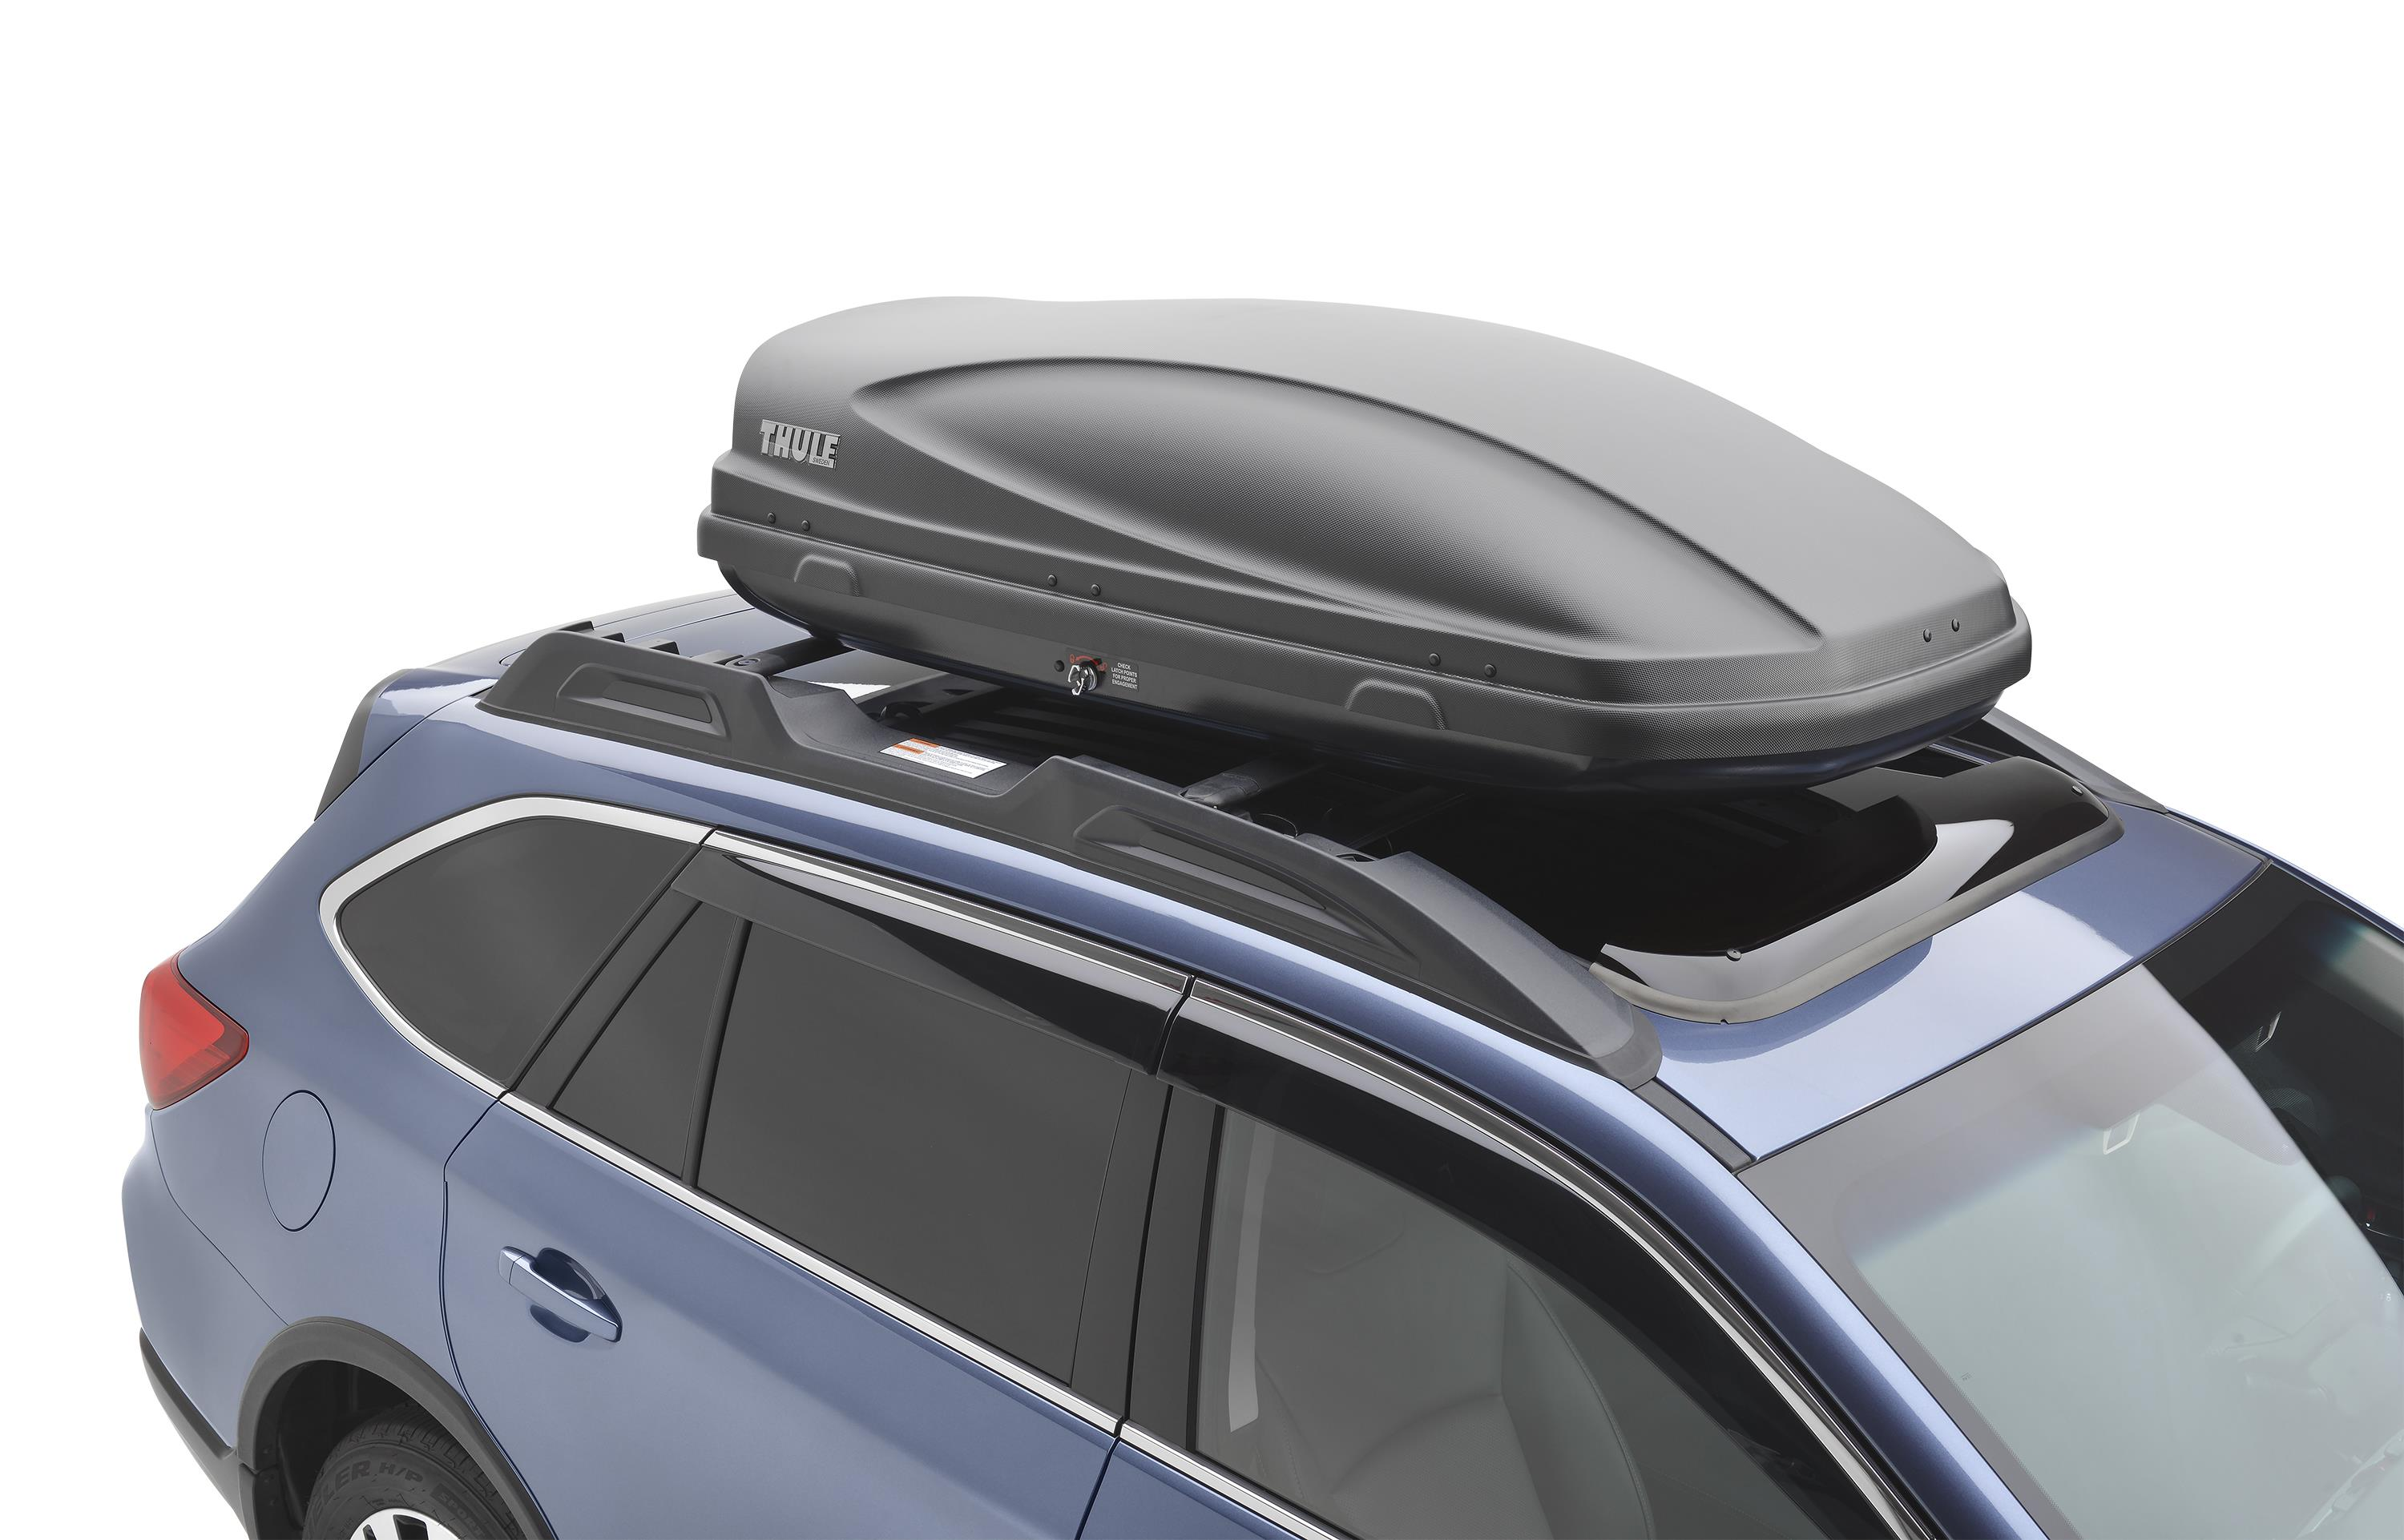 2017 Subaru Outback Thule Roof Cargo Carrier Provides